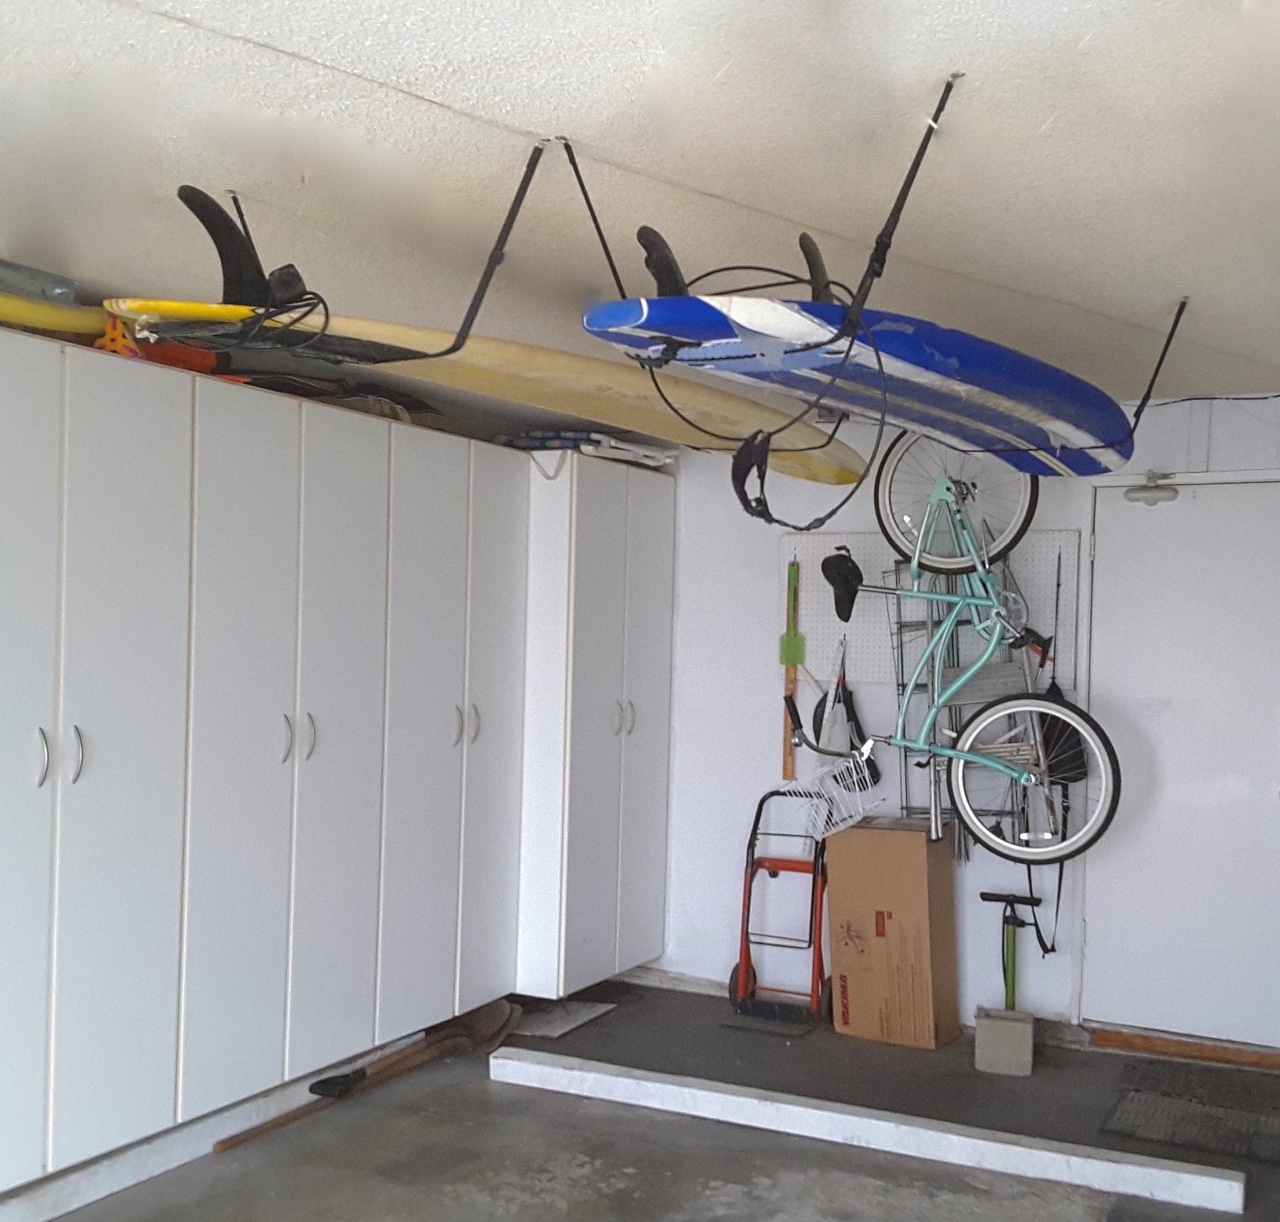 Garage Ceiling Surfboard Strap Rack